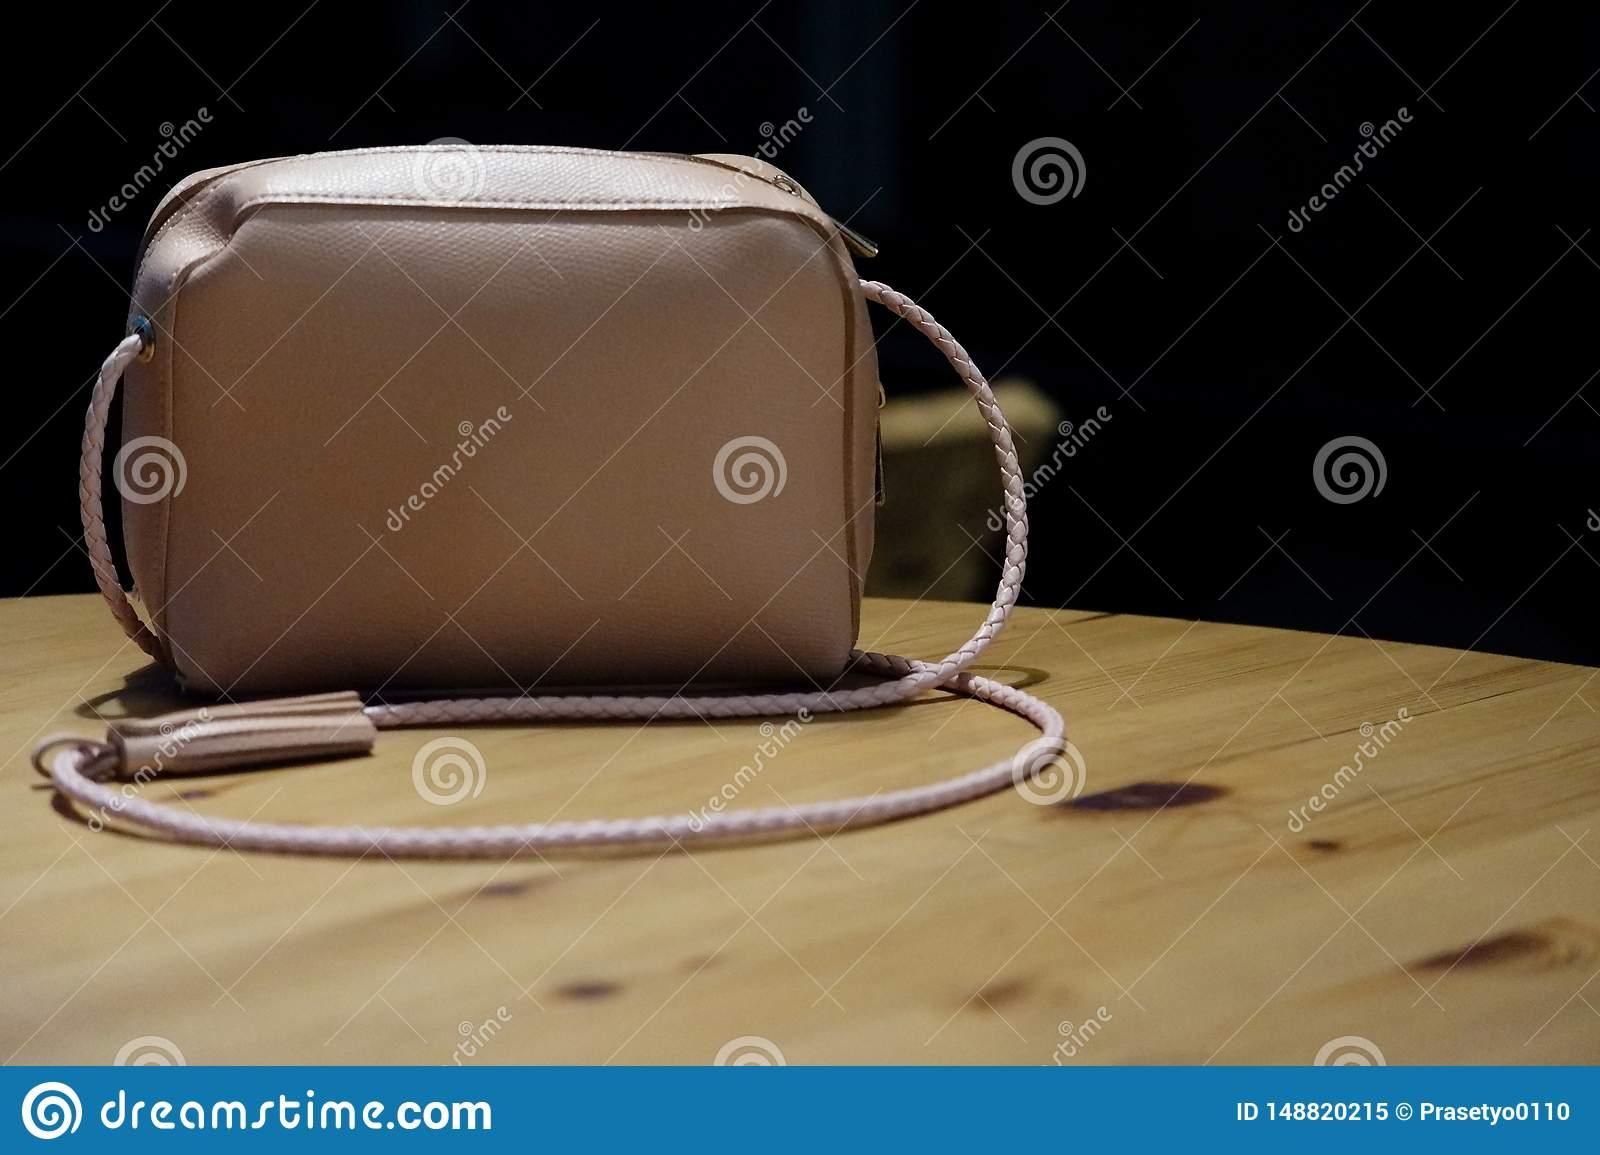 Pink woman bag on the wooden table.